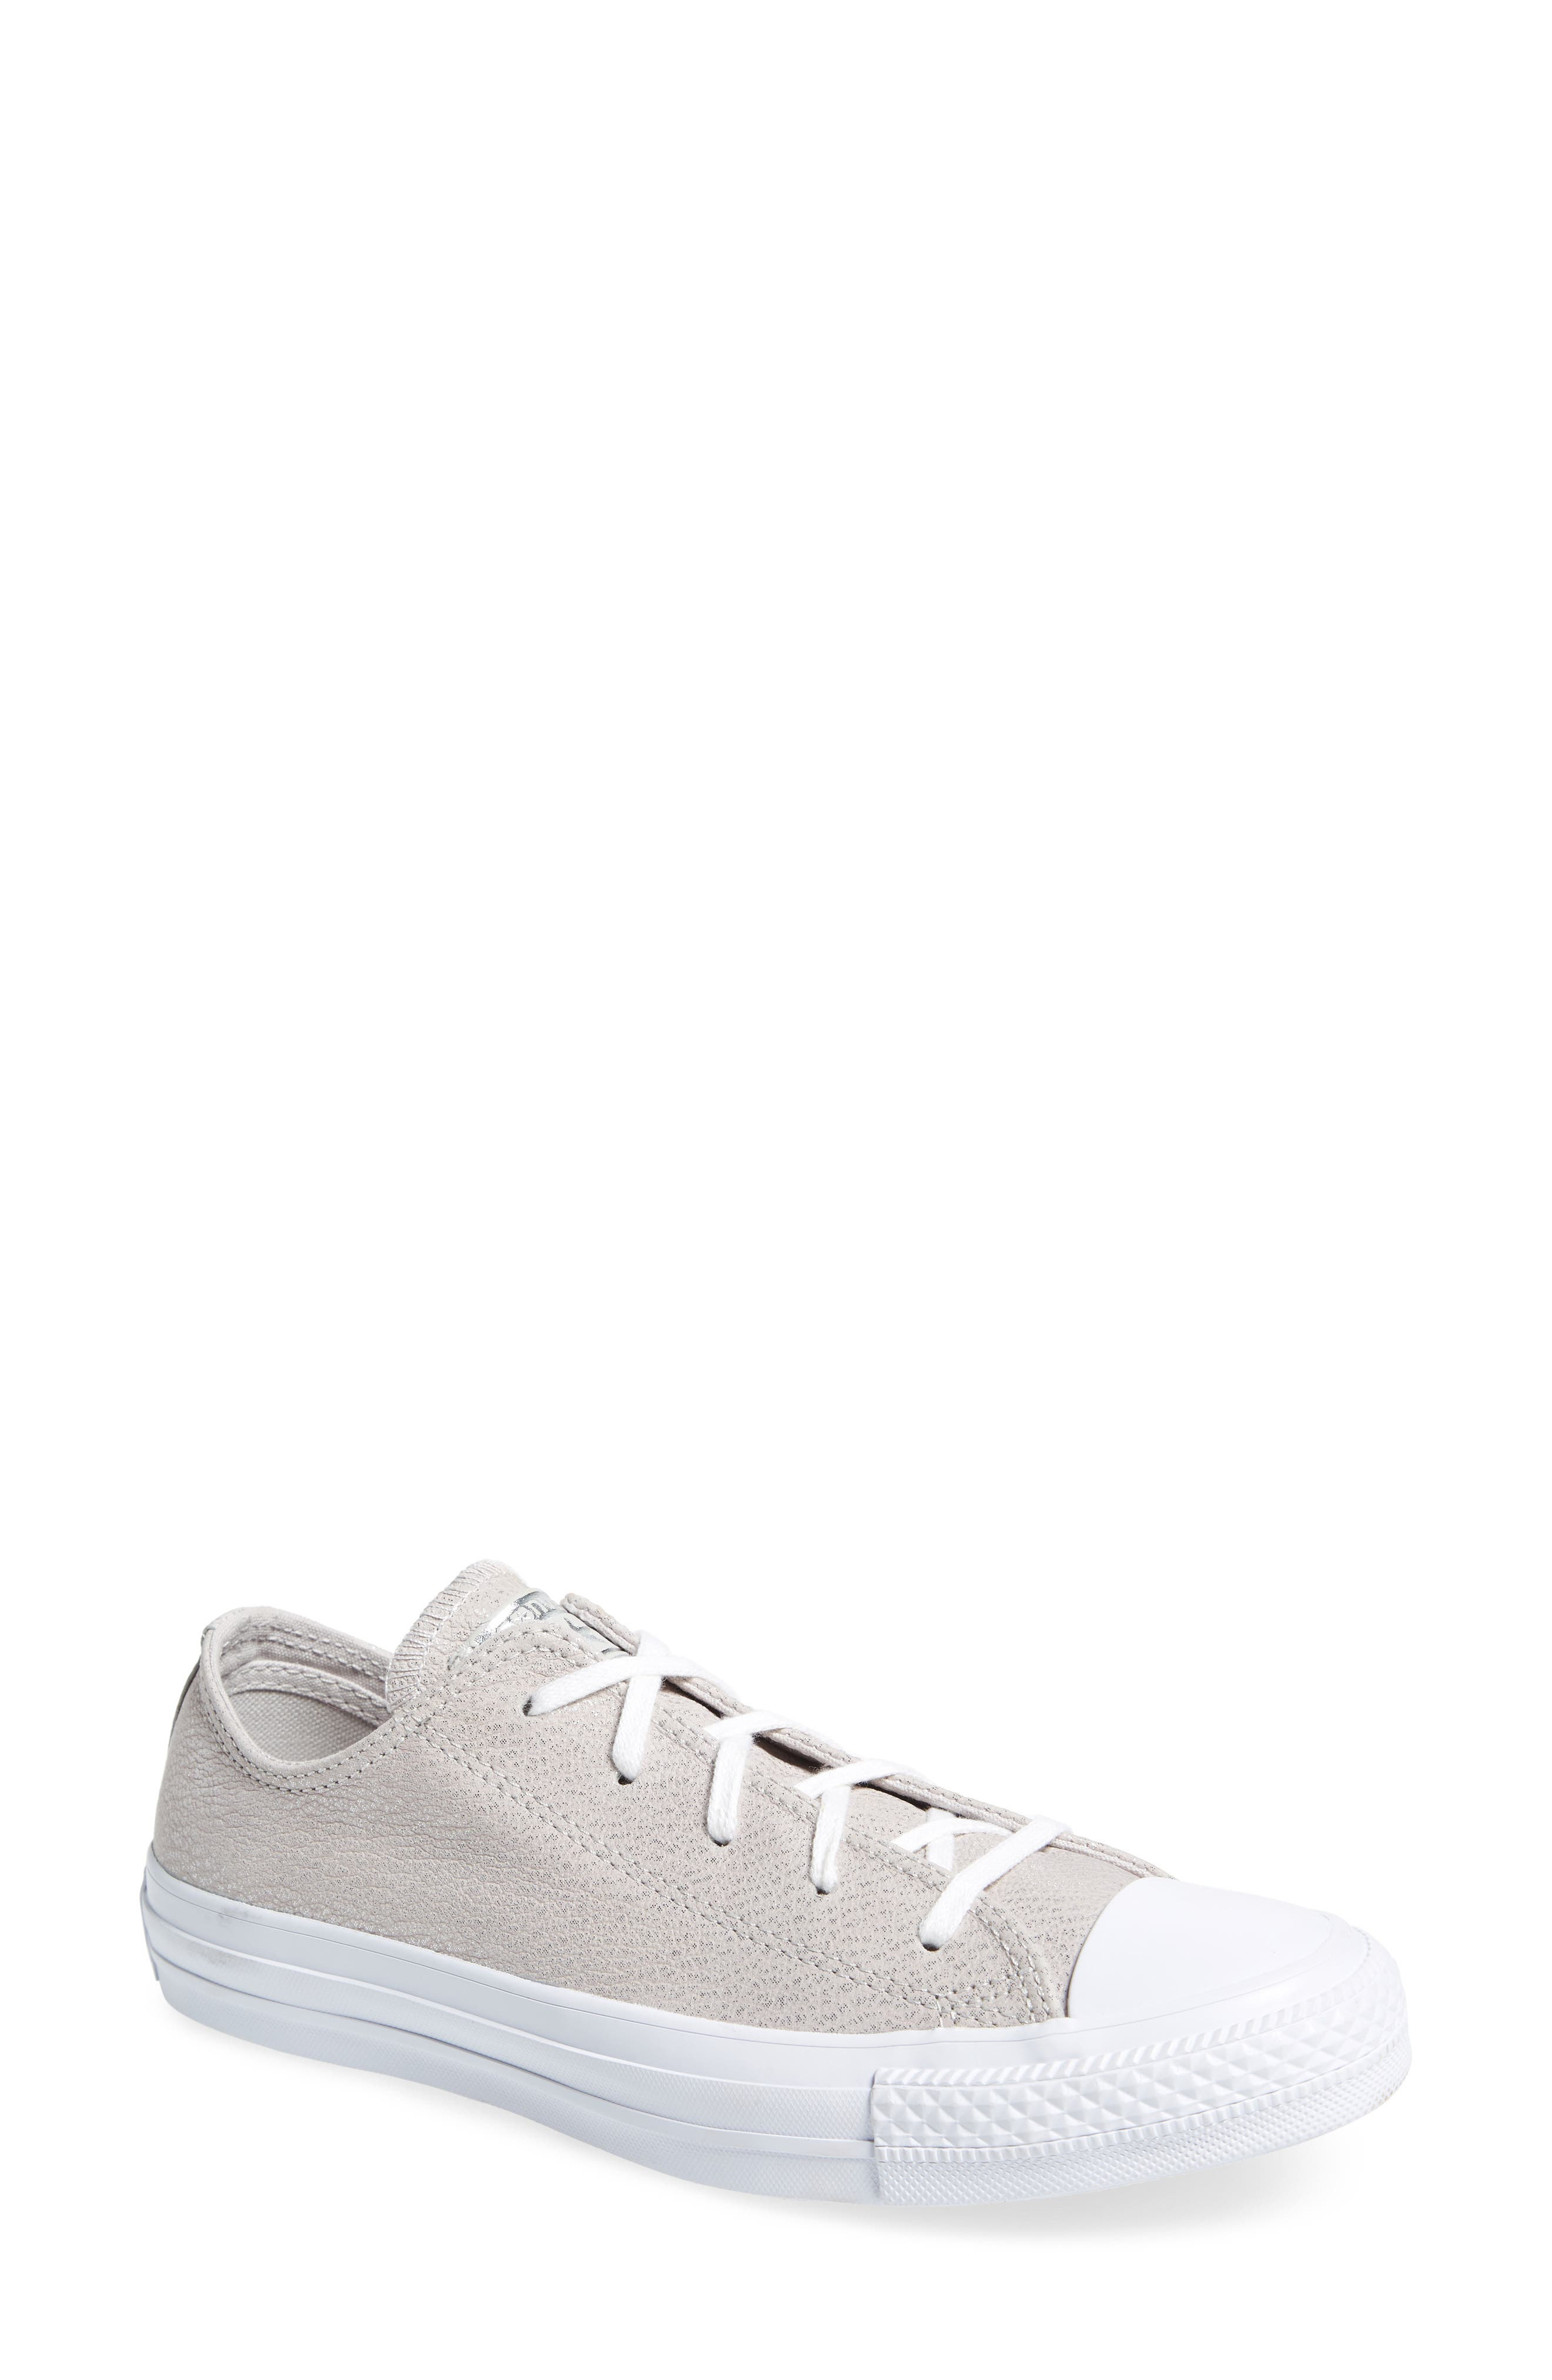 Chuck Taylor<sup>®</sup> All Star<sup>®</sup> Tipped Metallic Low Top Sneaker,                         Main,                         color, Pale Putty